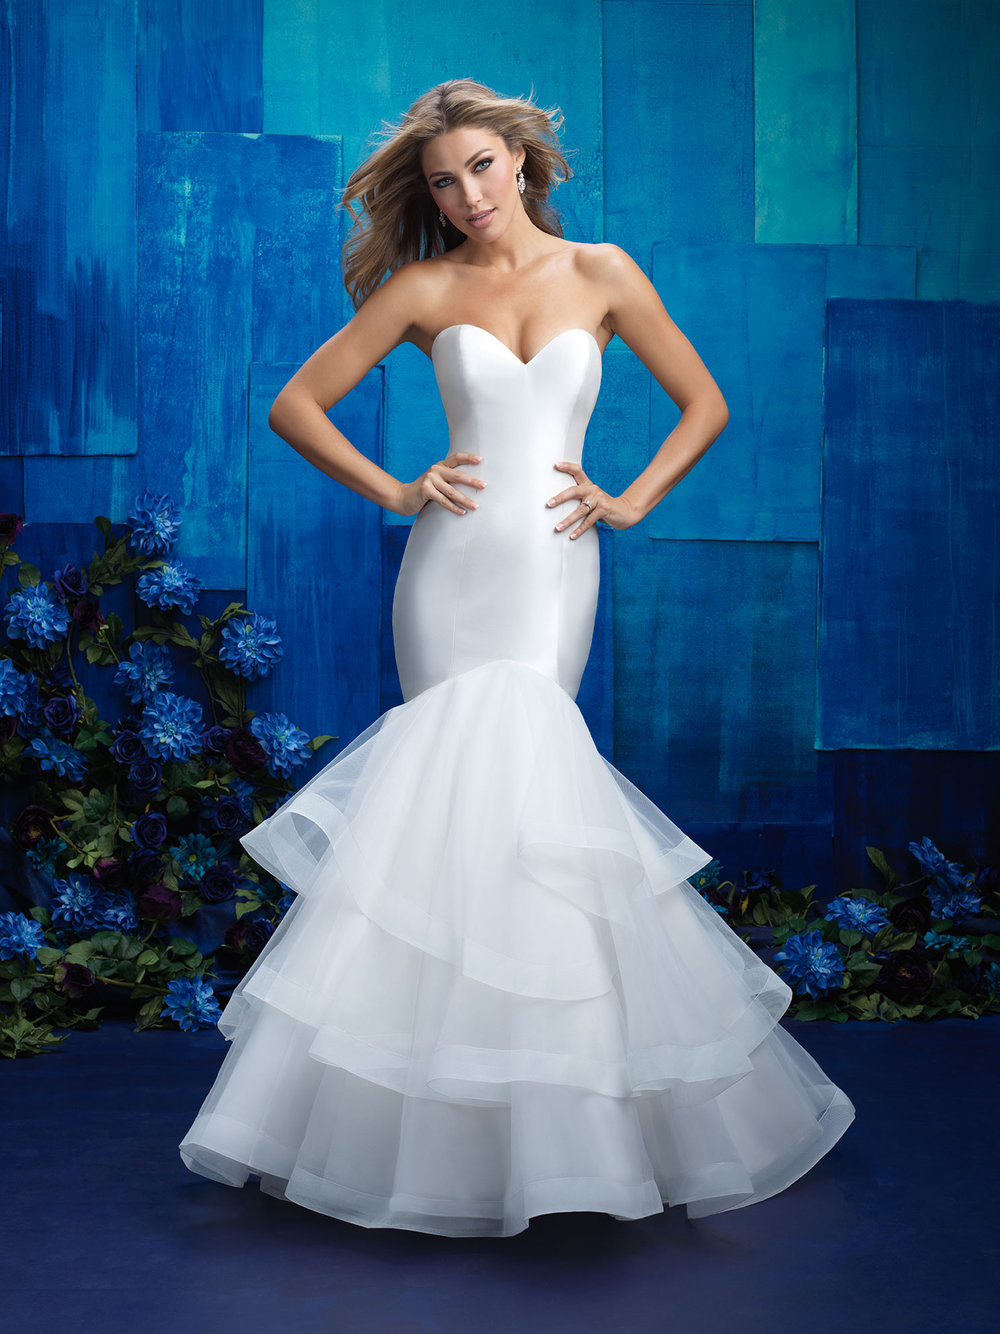 Style 9416 - A smooth satin finish paired with tiered ruffles lends itself to a truly statuesque strapless gown.